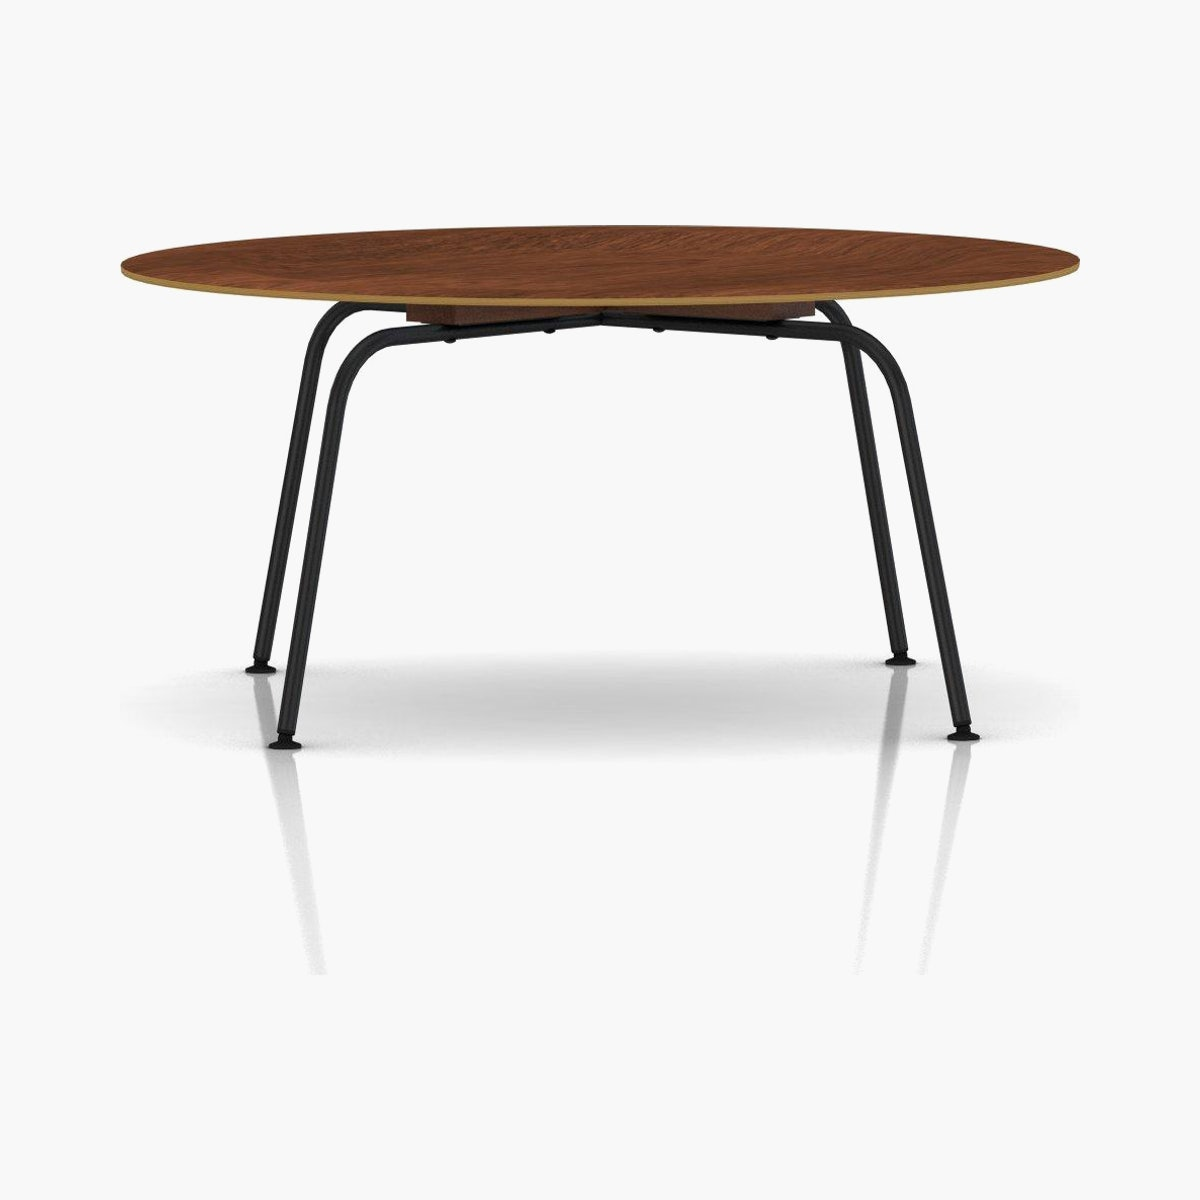 Eames Molded Plywood Coffee Table Metal Base